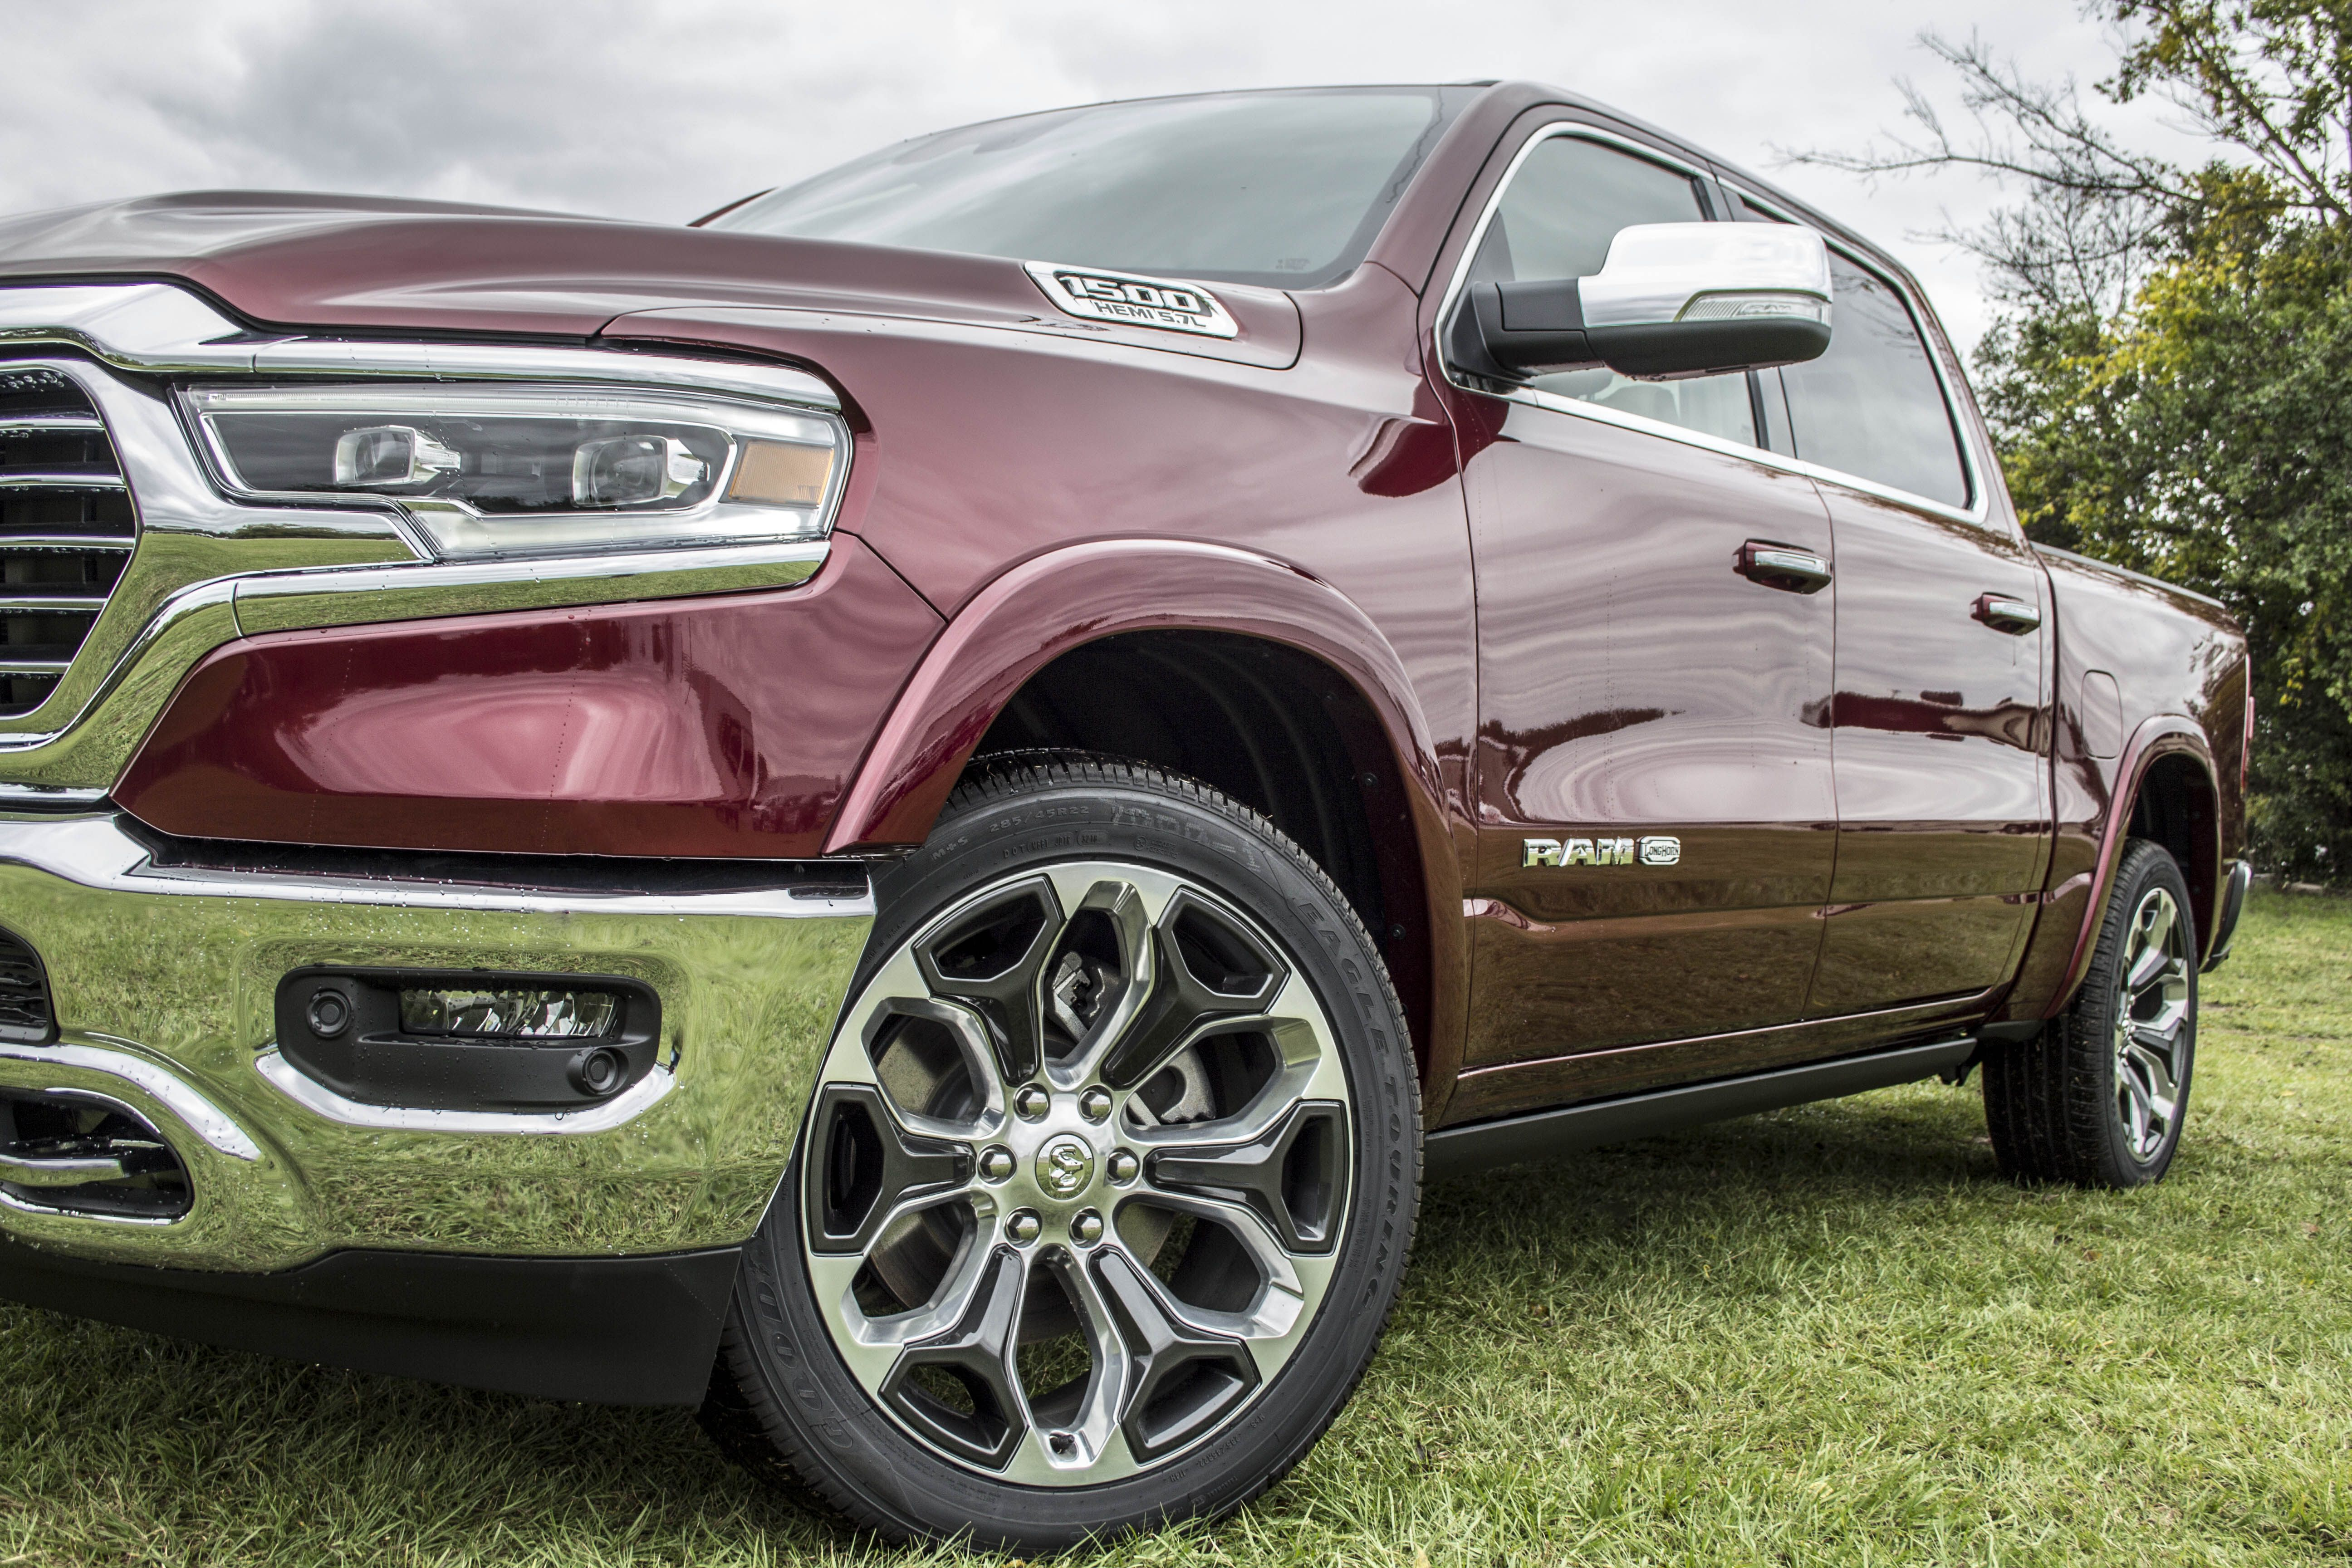 2019 Ram 1500 Laramie Longhorn Ram 1500 Ram Trucks Chrysler Dodge Jeep